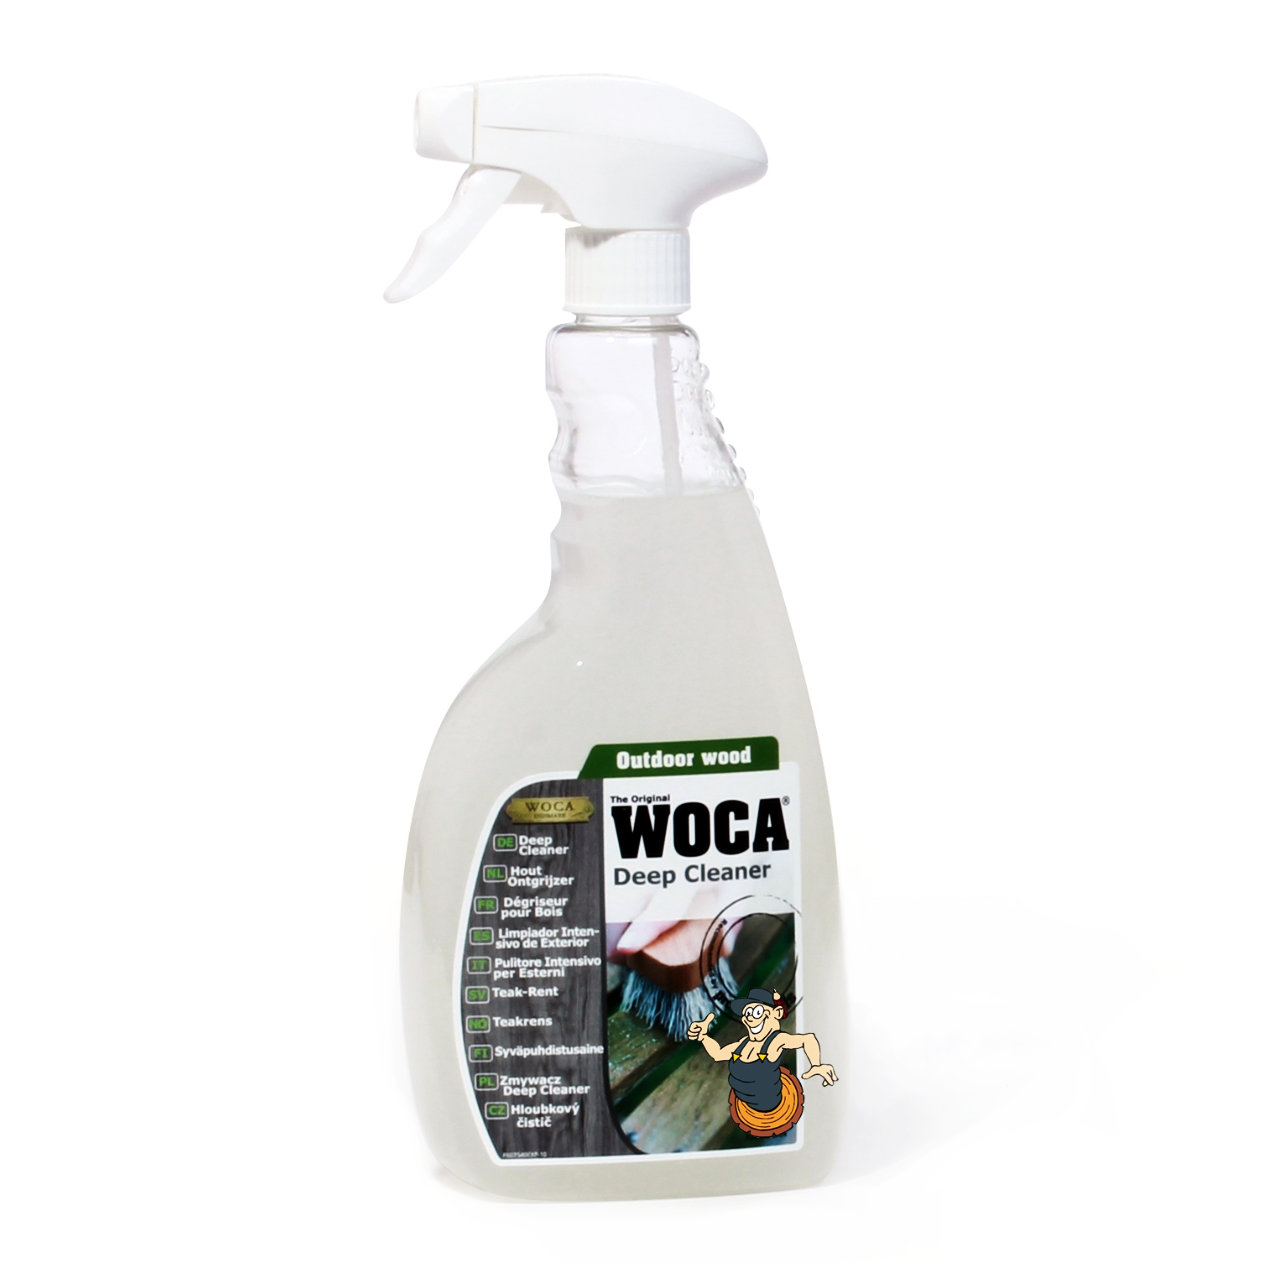 WOCA Deep Cleaner 2 in 1